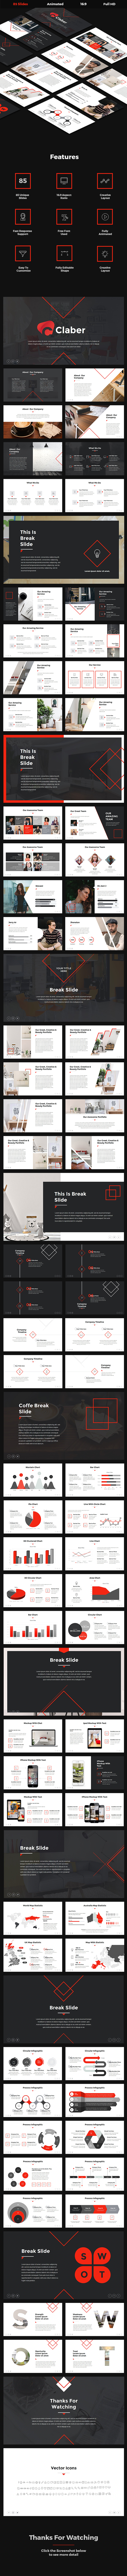 Claber - Creative Powerpoint Template - Creative PowerPoint Templates